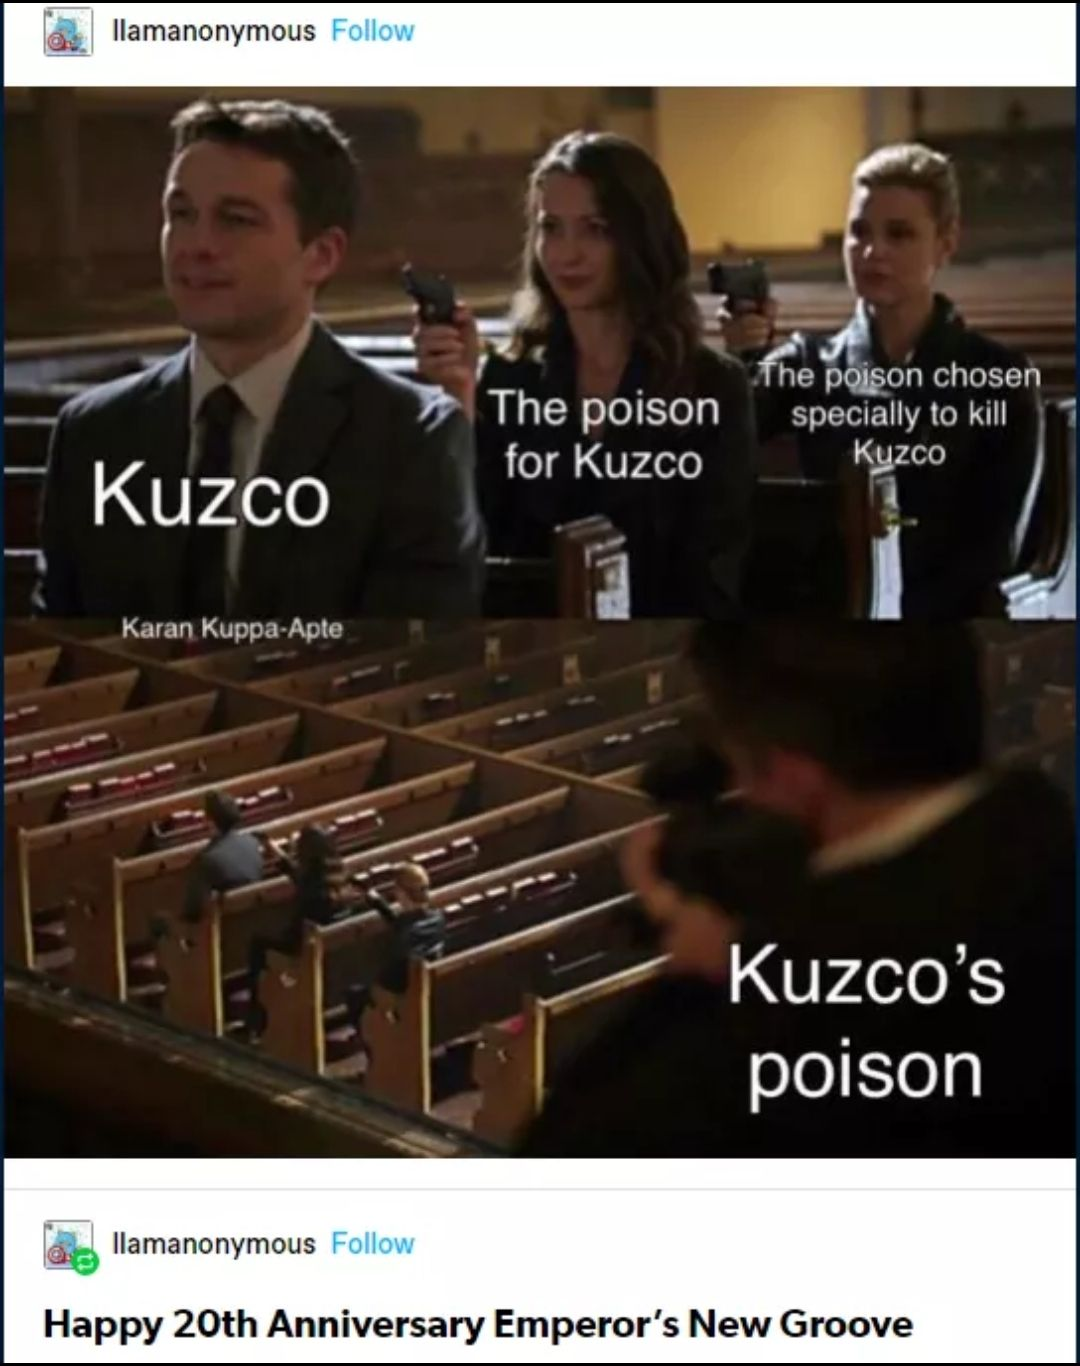 Who's Poison?